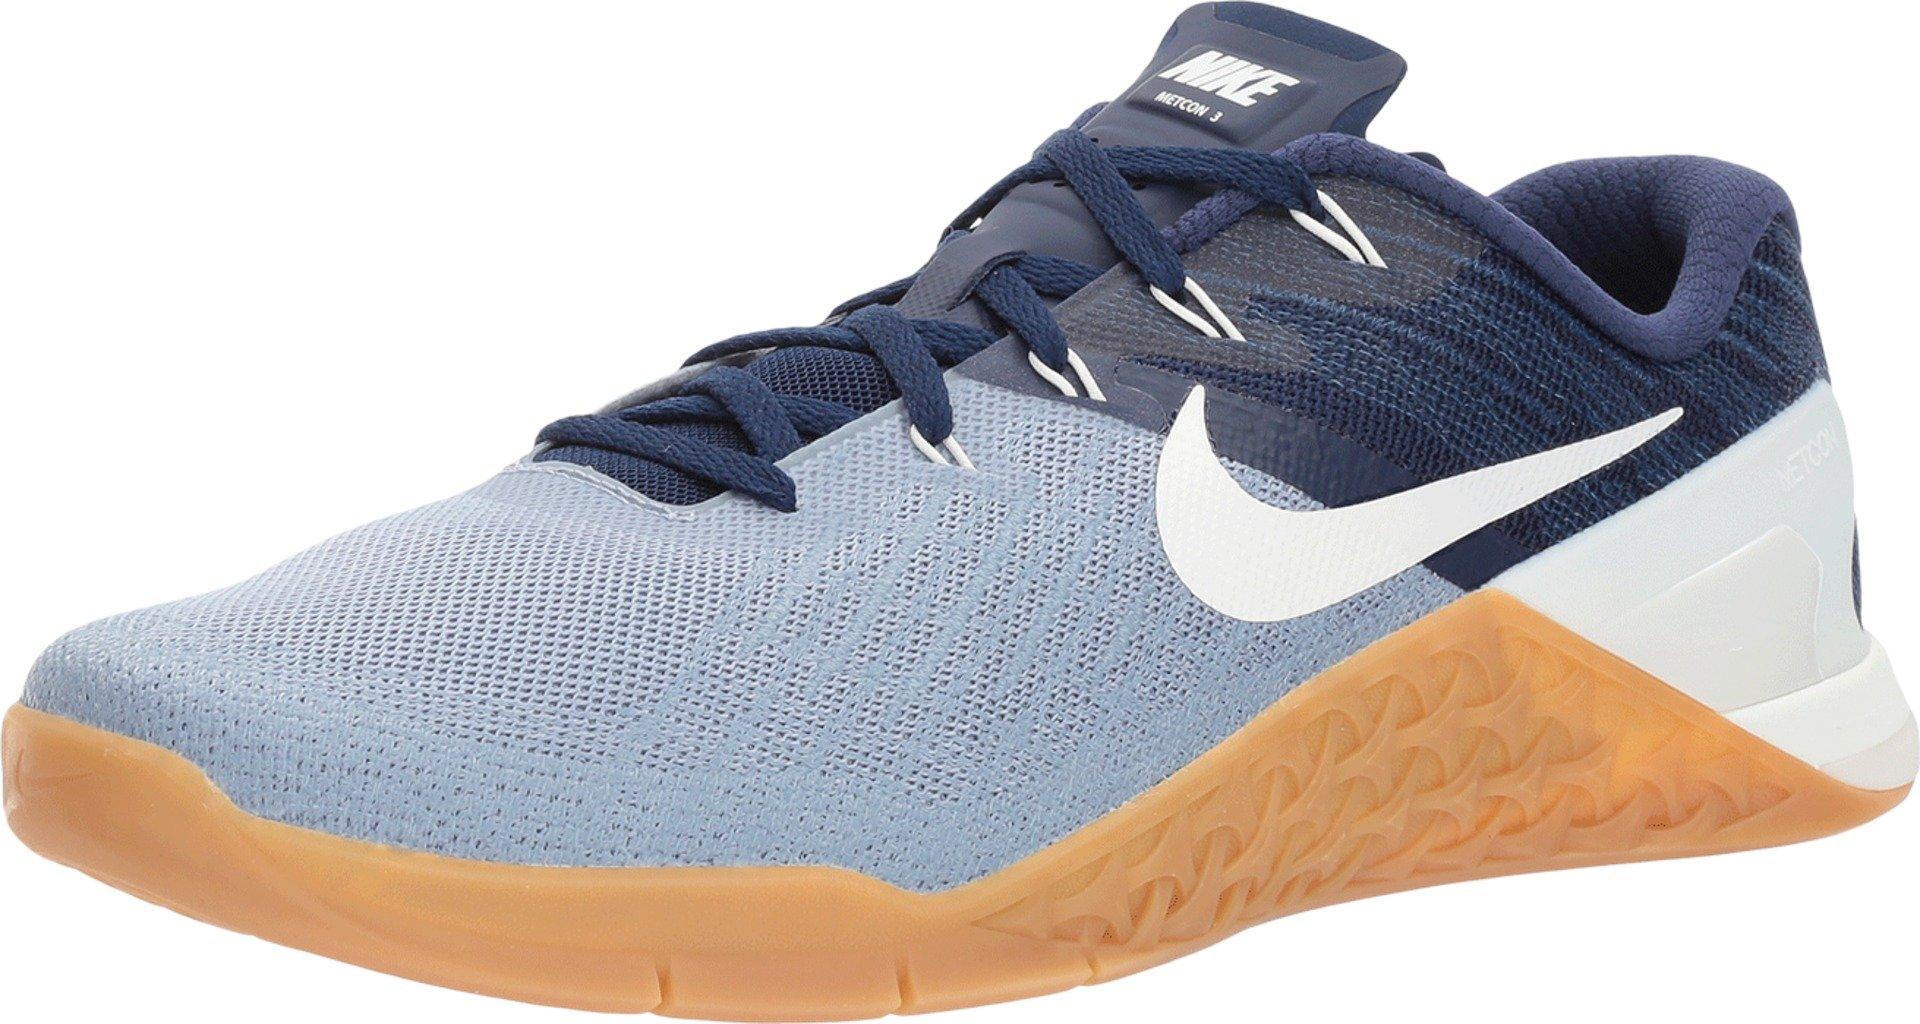 NIKE Metcon 3 852928-013 Glacier Grey/Sail/Binary Blue Men's Training Shoes (7 D US)